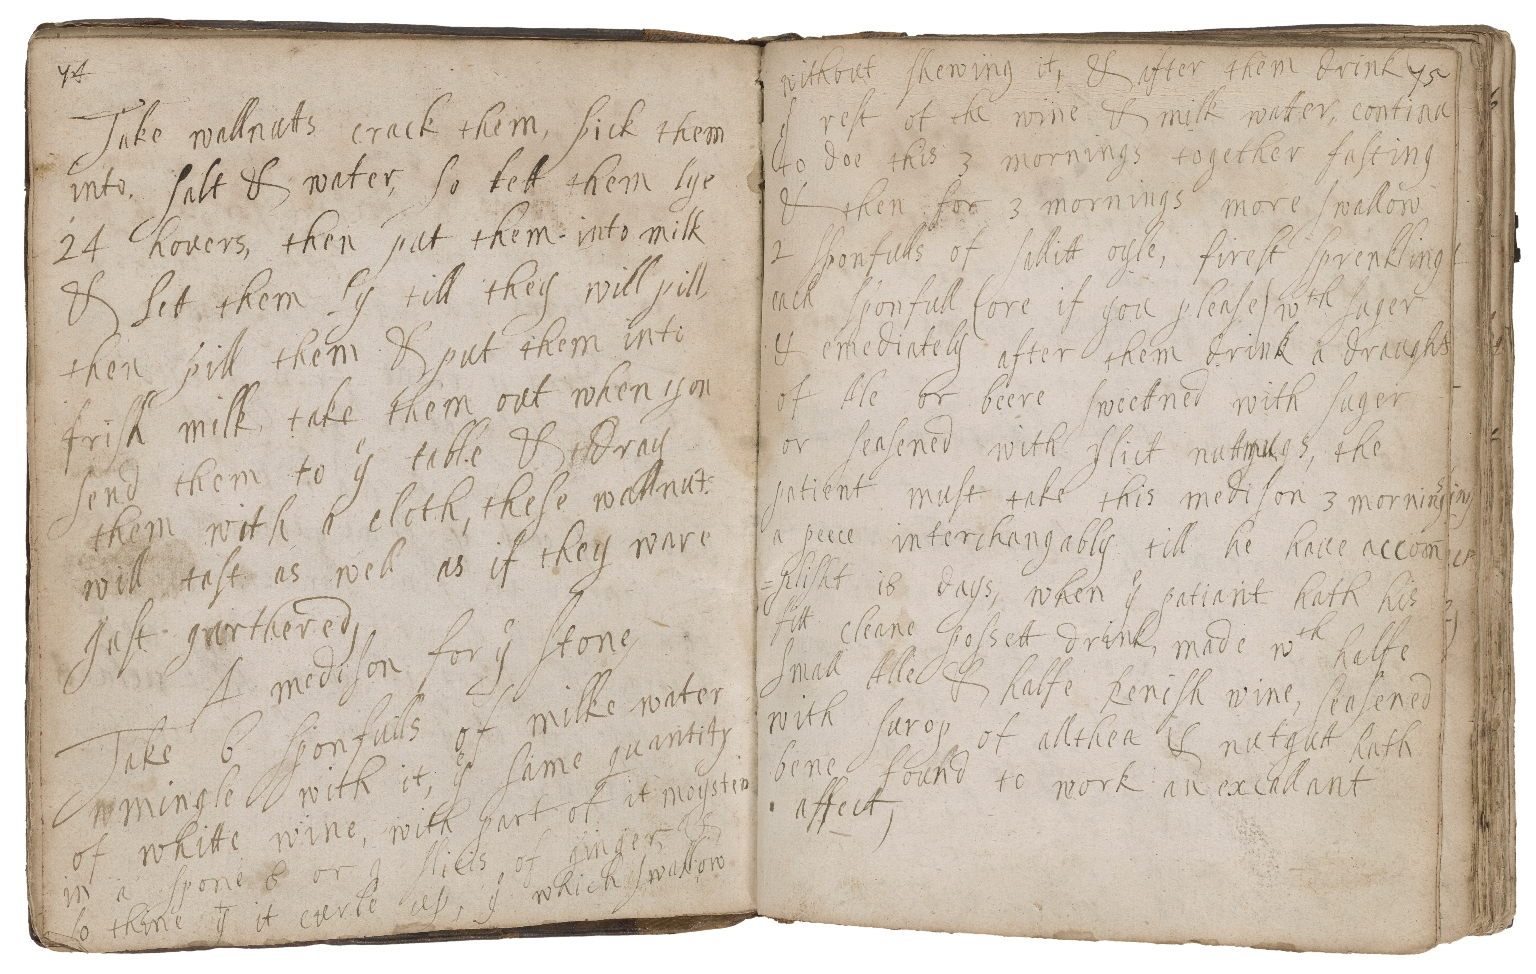 The Lady Grace Castleton's booke of receipts [manuscript].